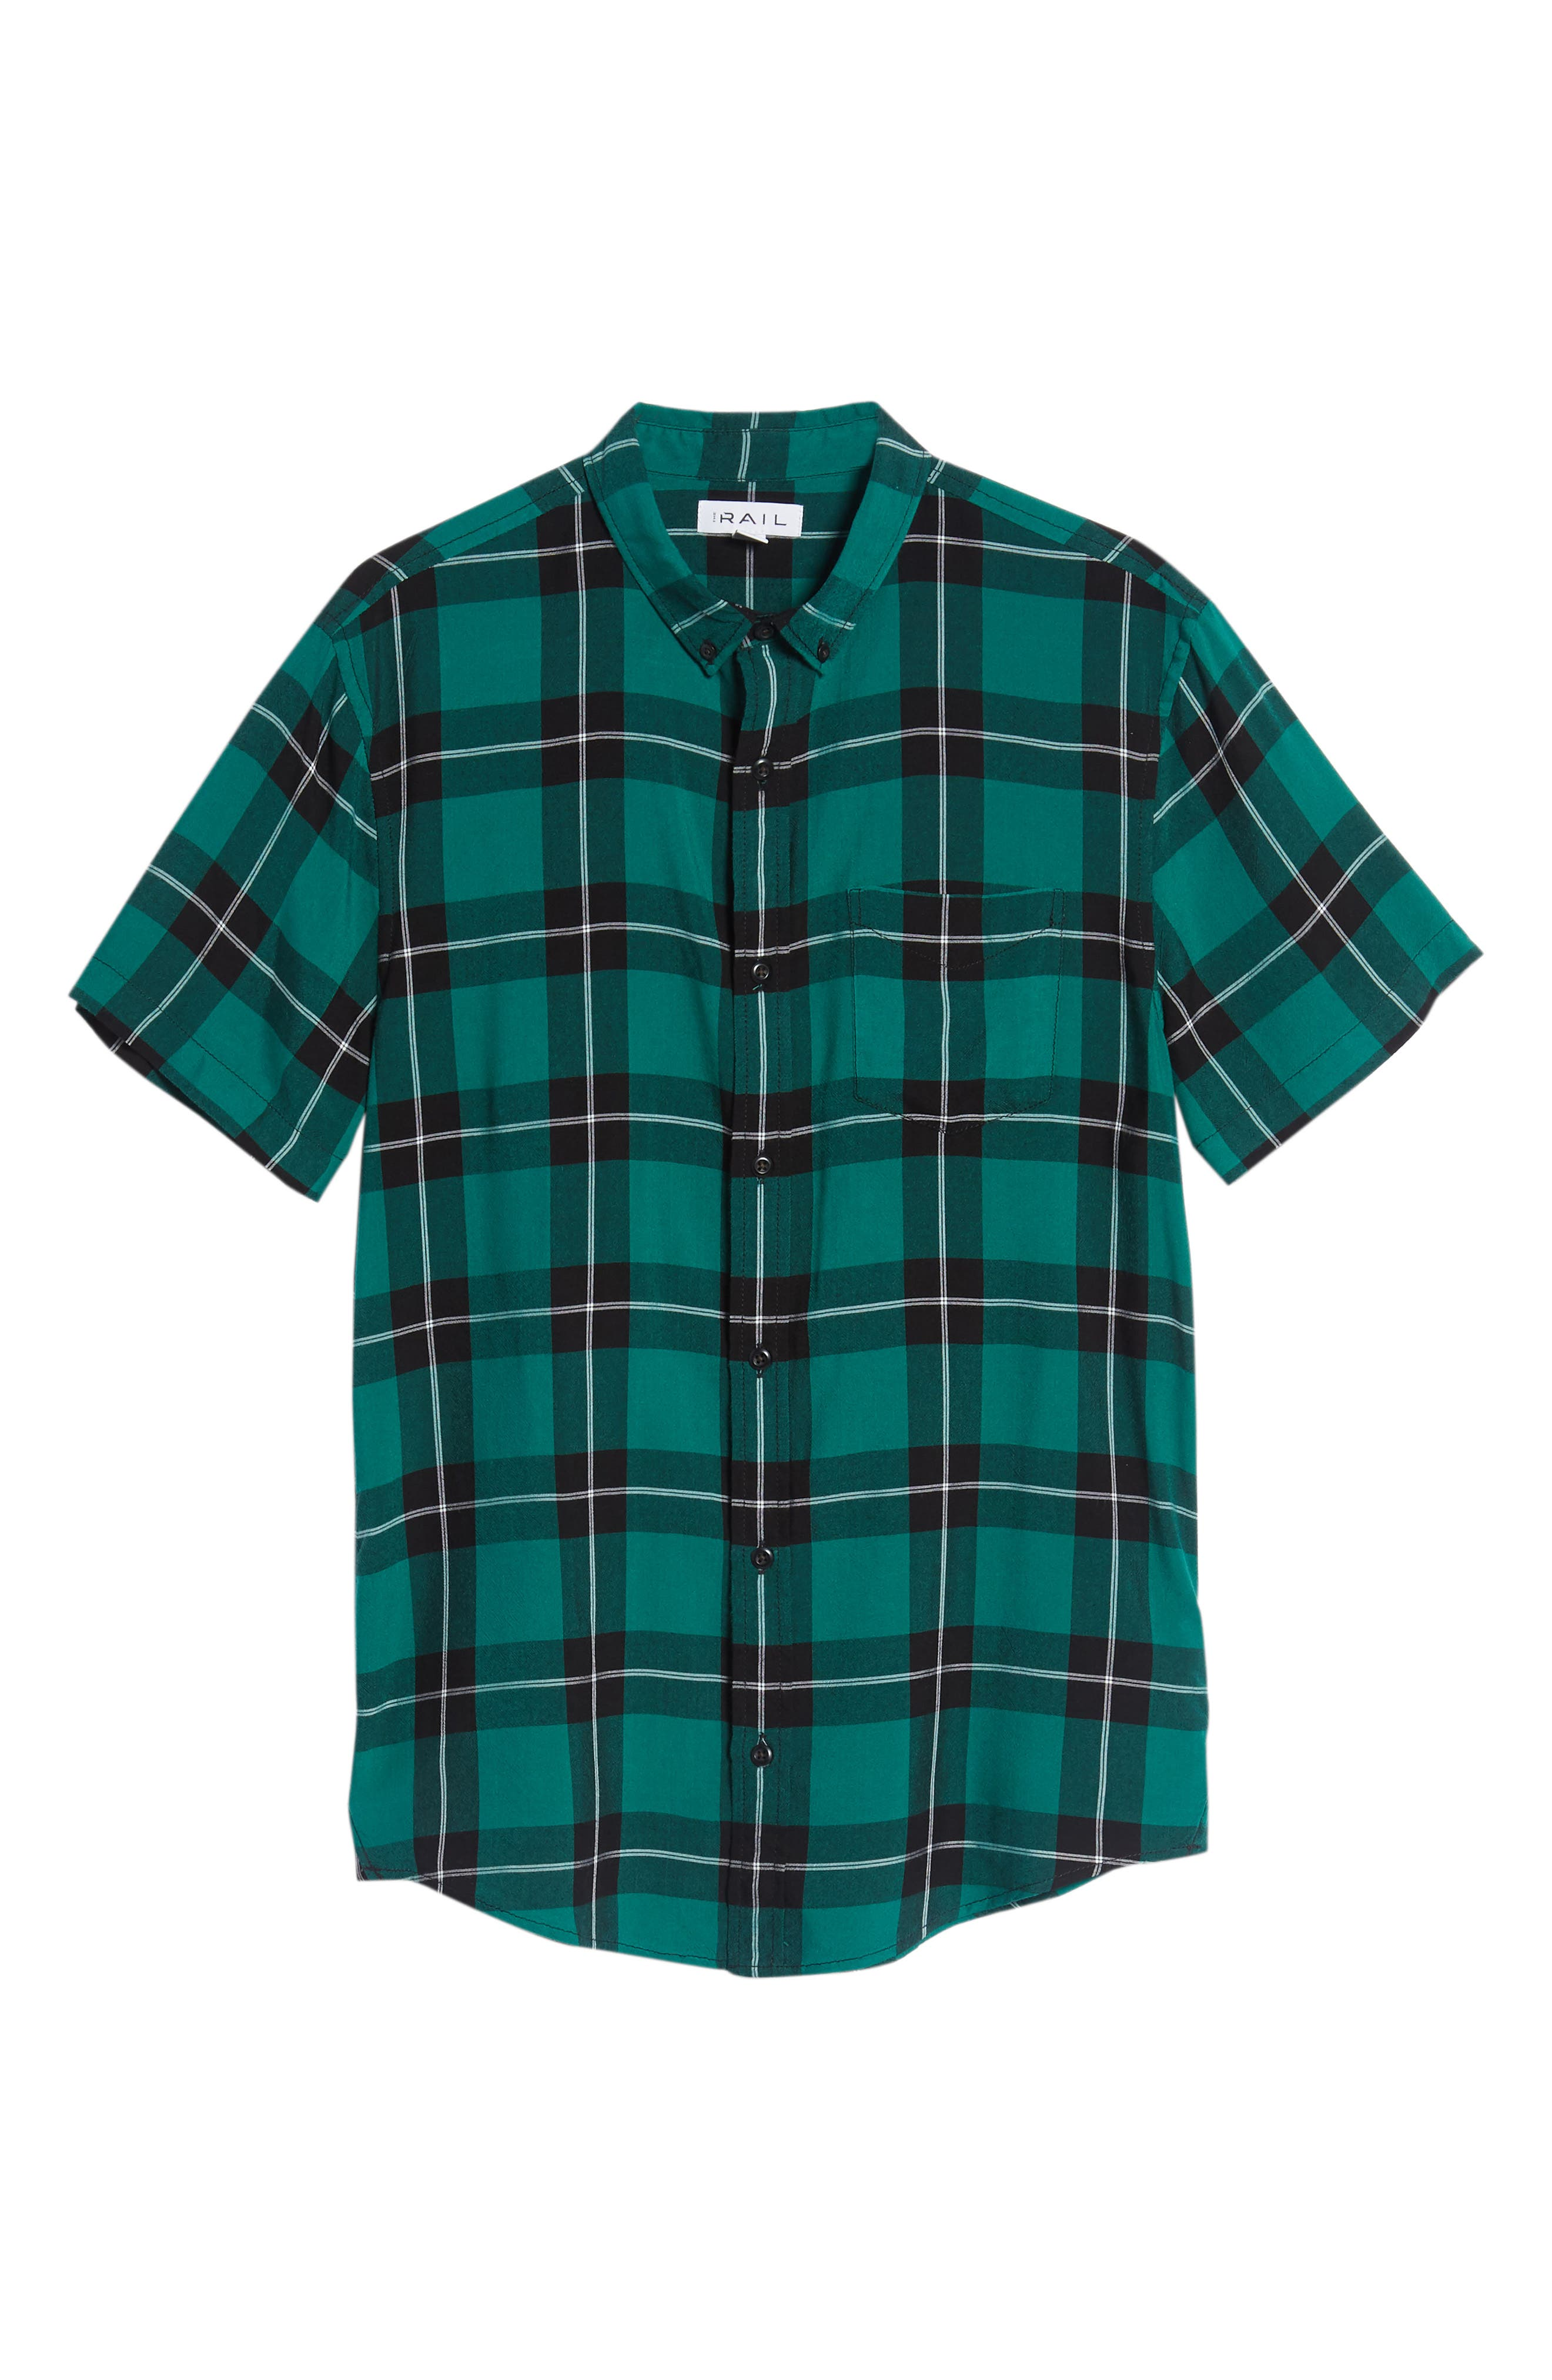 Yarn Dyed Plaid Shirt,                             Alternate thumbnail 6, color,                             001